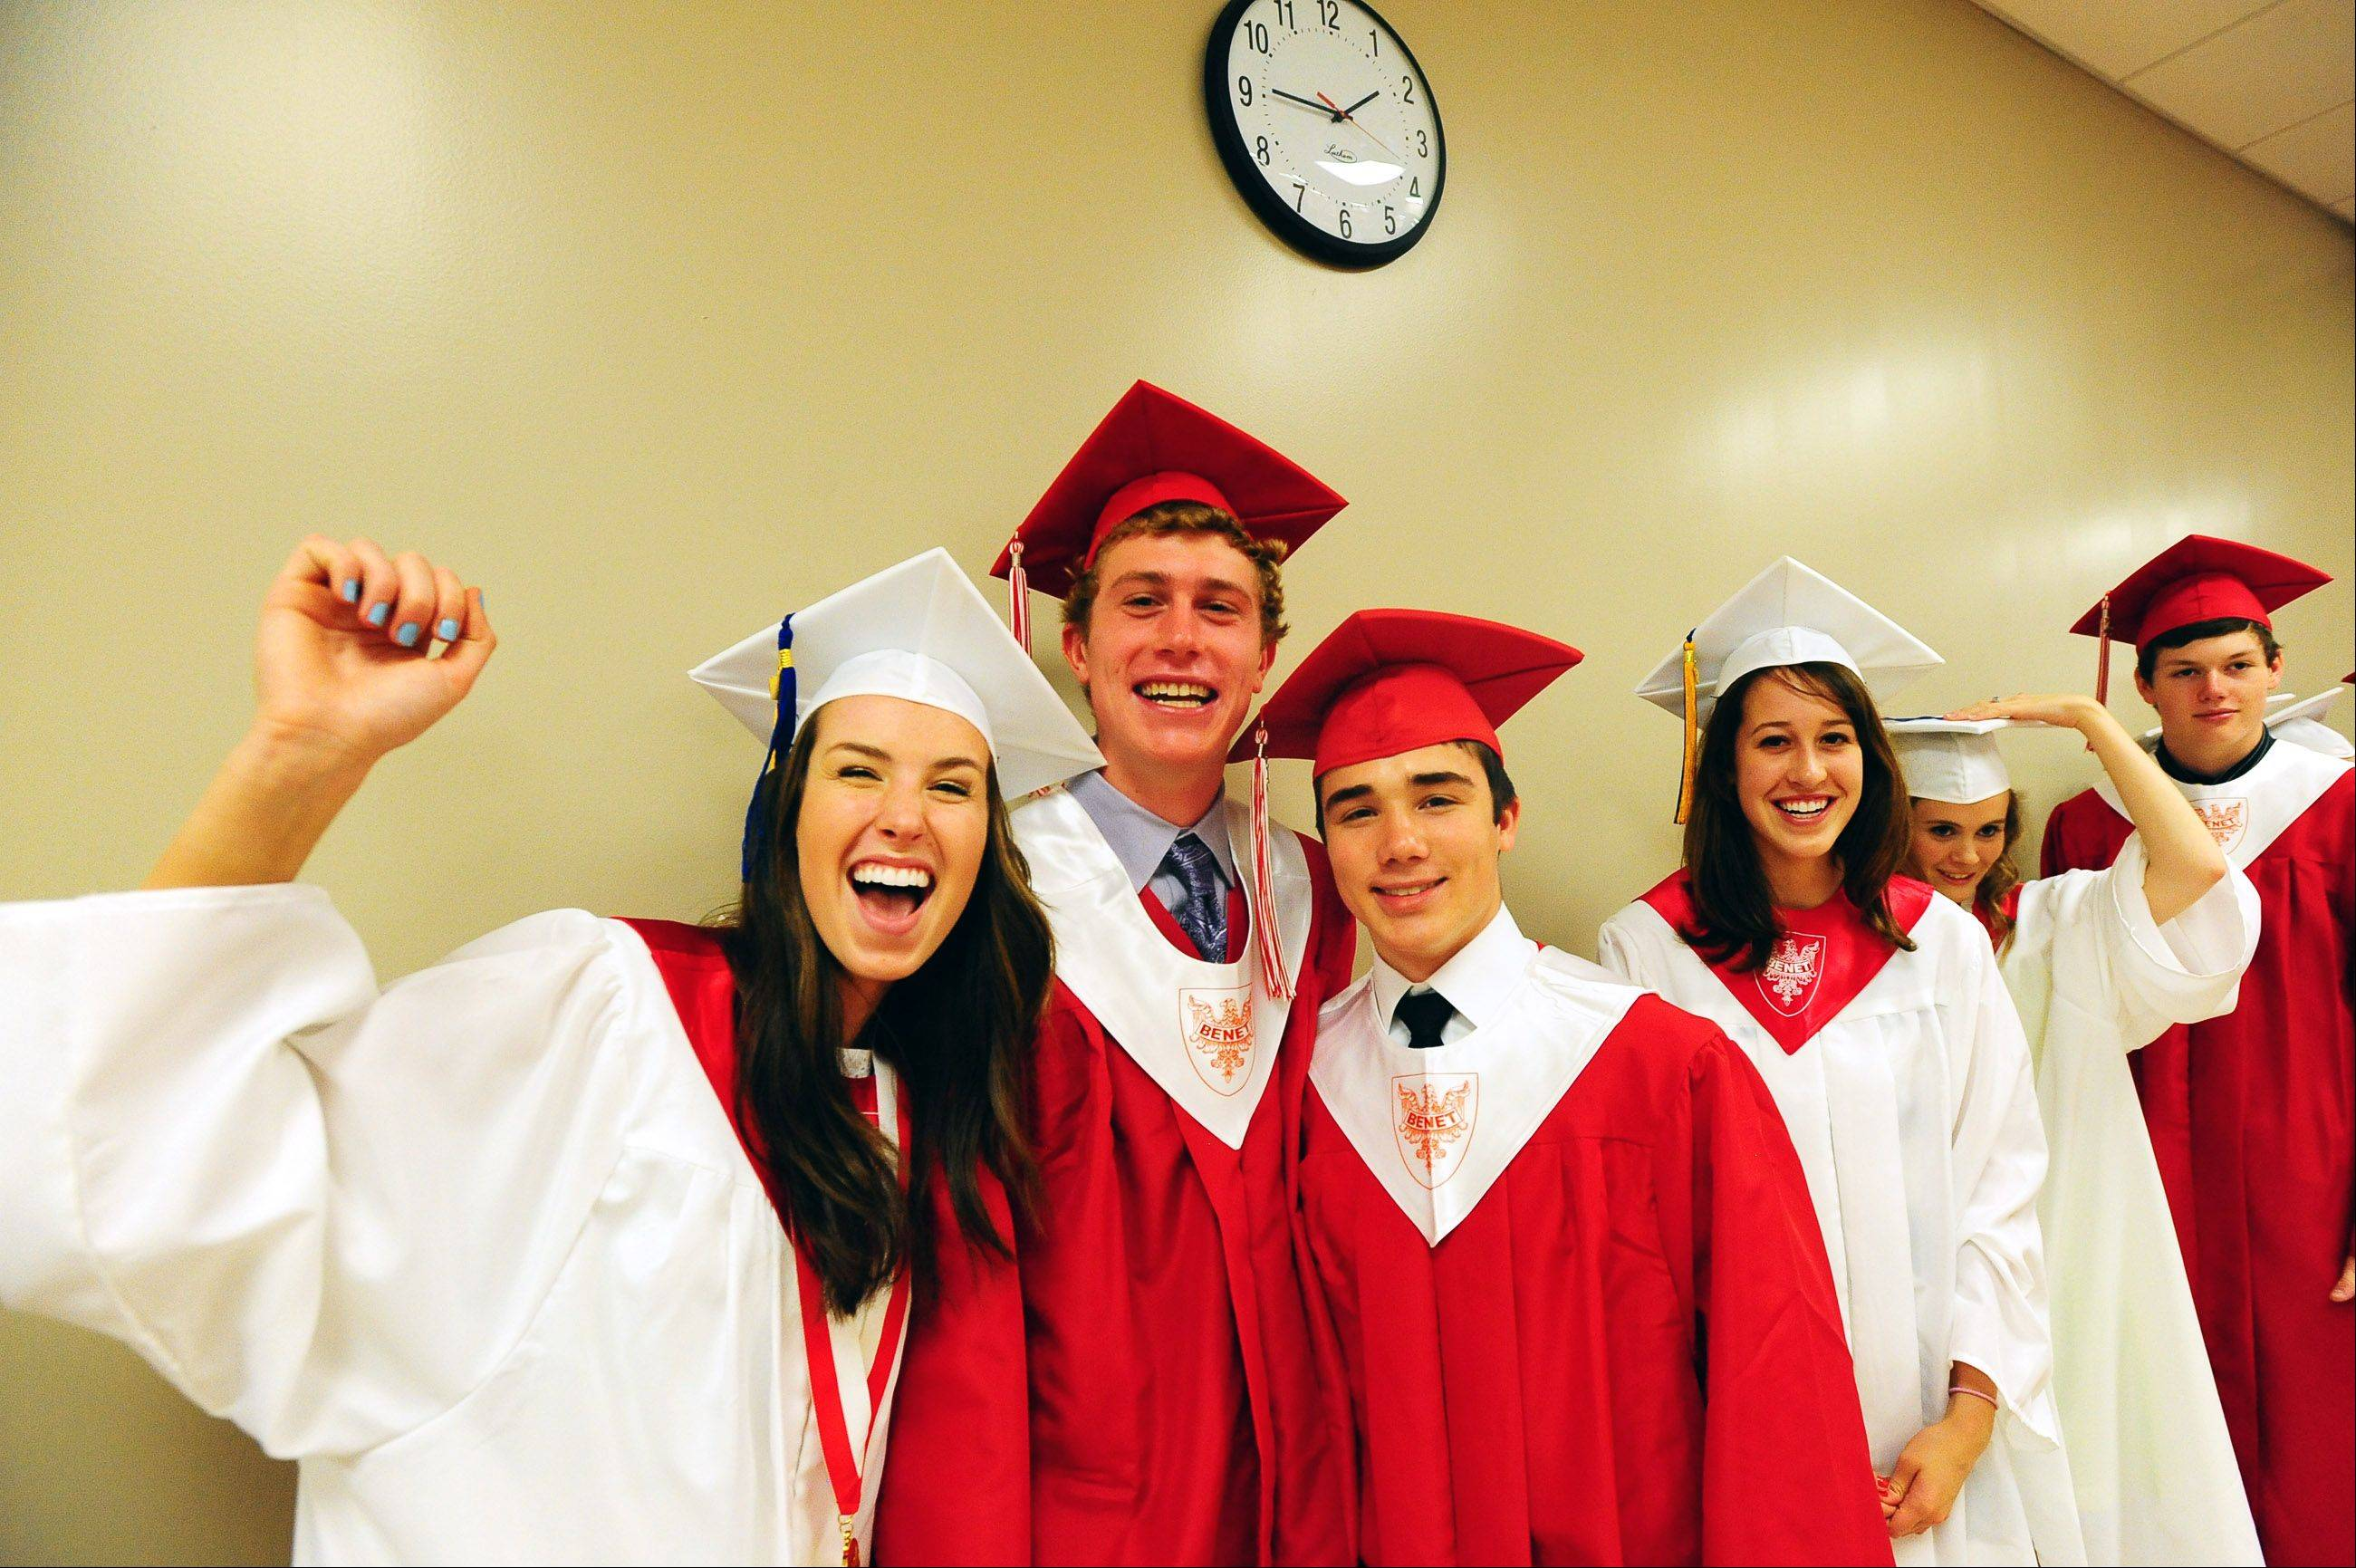 Madeline Carney, Thomas Chapman and Alex Gallicho celebrate before Sunday's graduation ceremony at Benet Academy in Lisle.